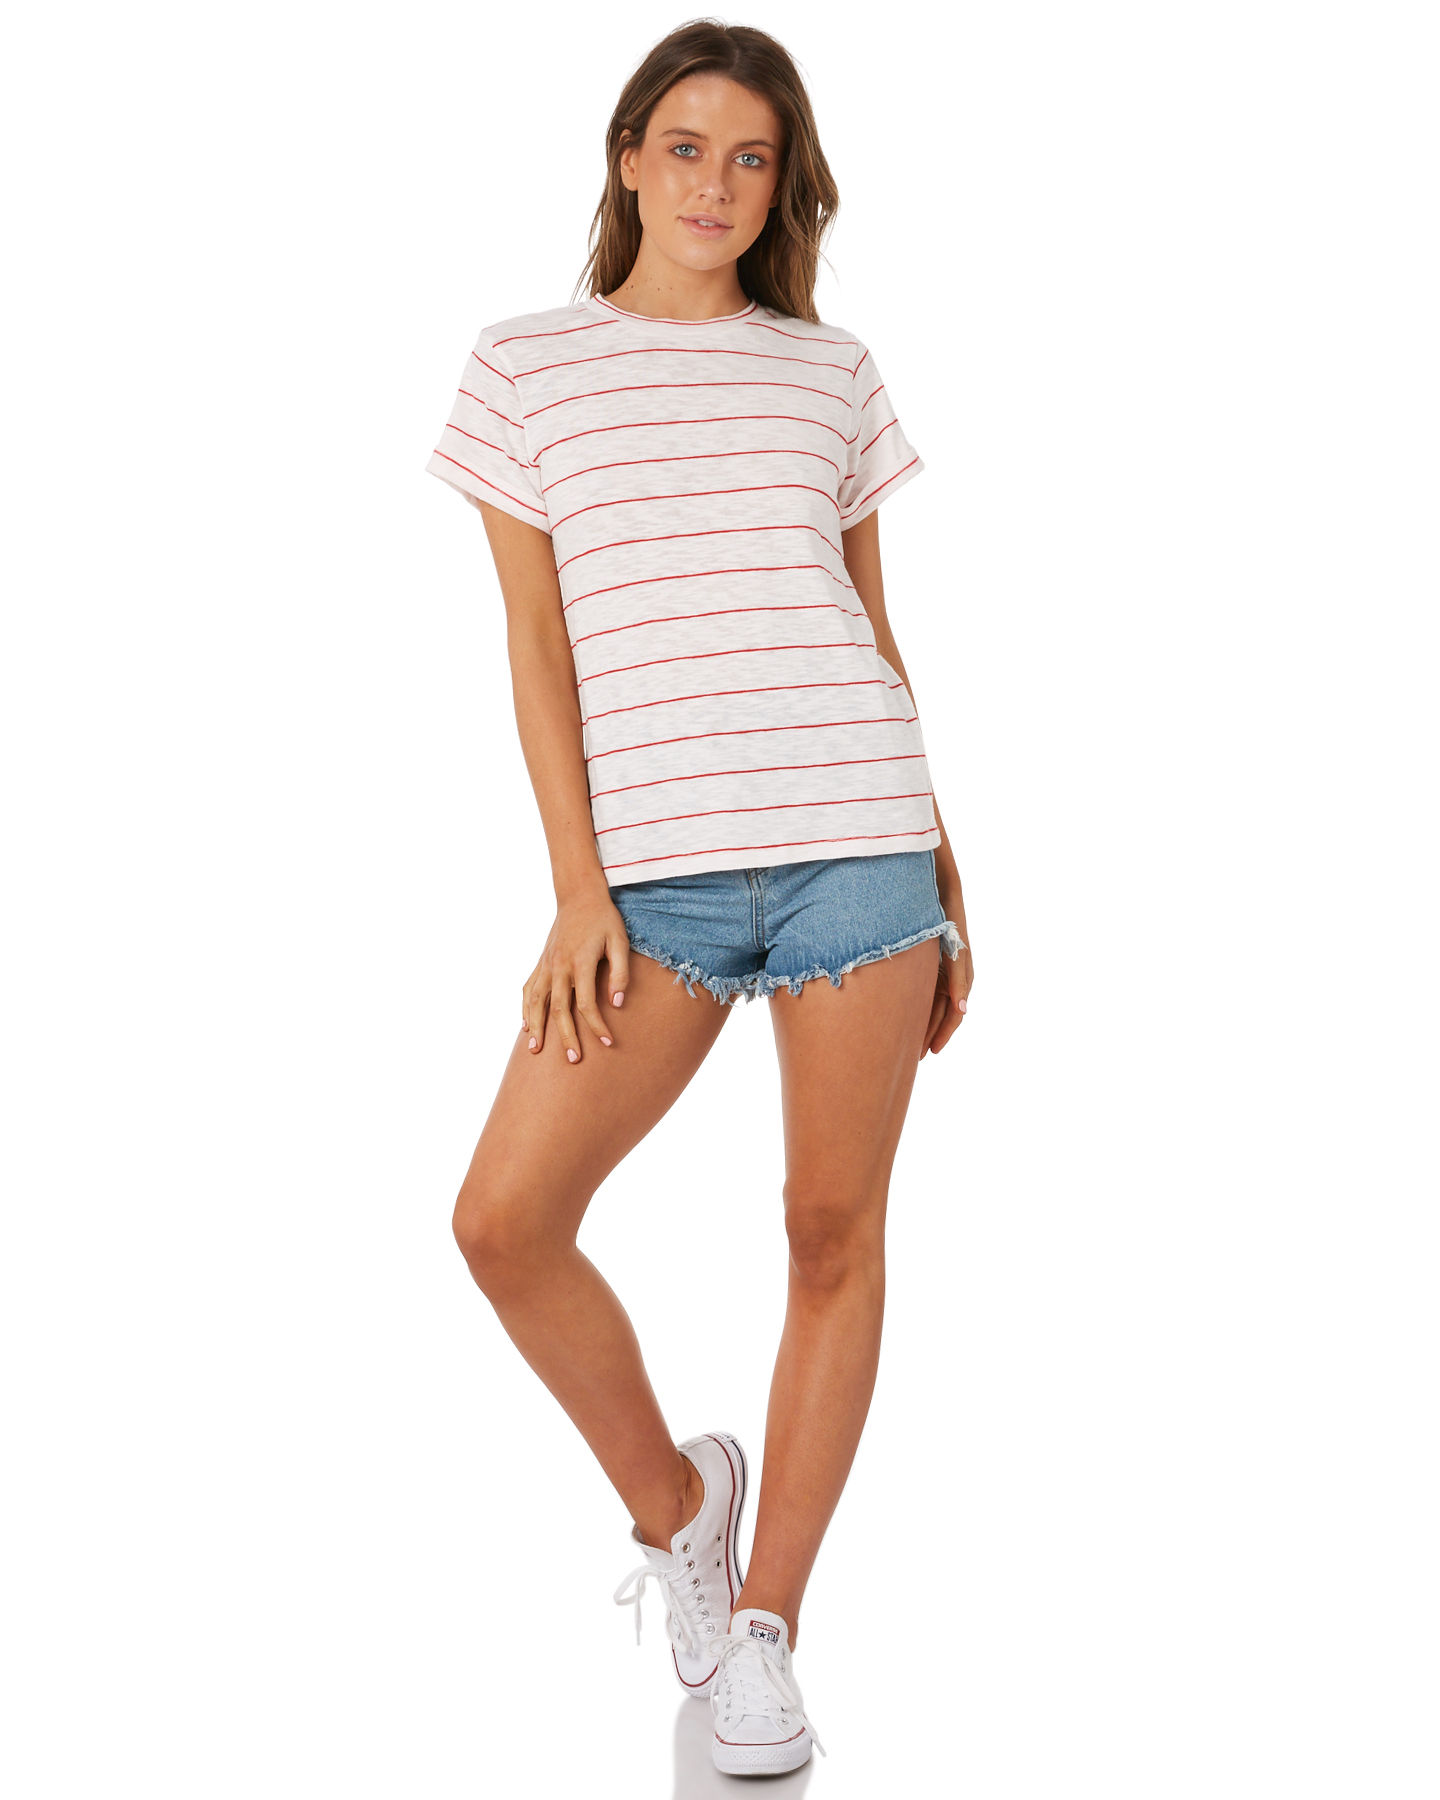 New-Swell-Women-039-s-Ginger-Boyfriend-Tee-Crew-Neck-Short-Sleeve-Cotton-Red thumbnail 15